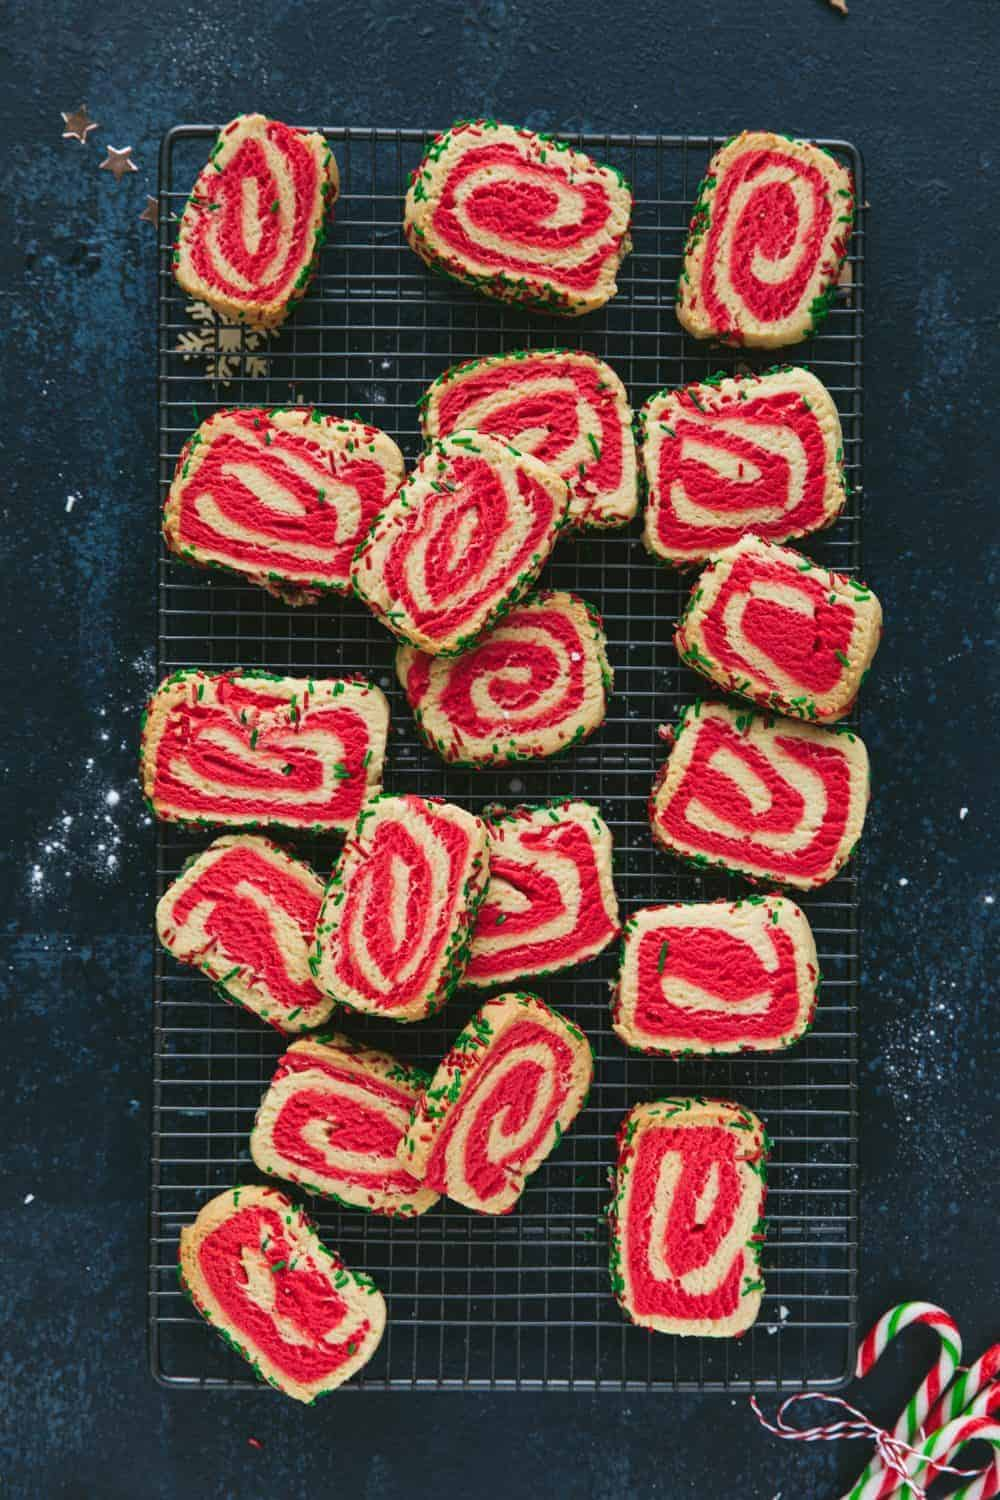 Red and white swirl cookies on a metal cooling wrack.